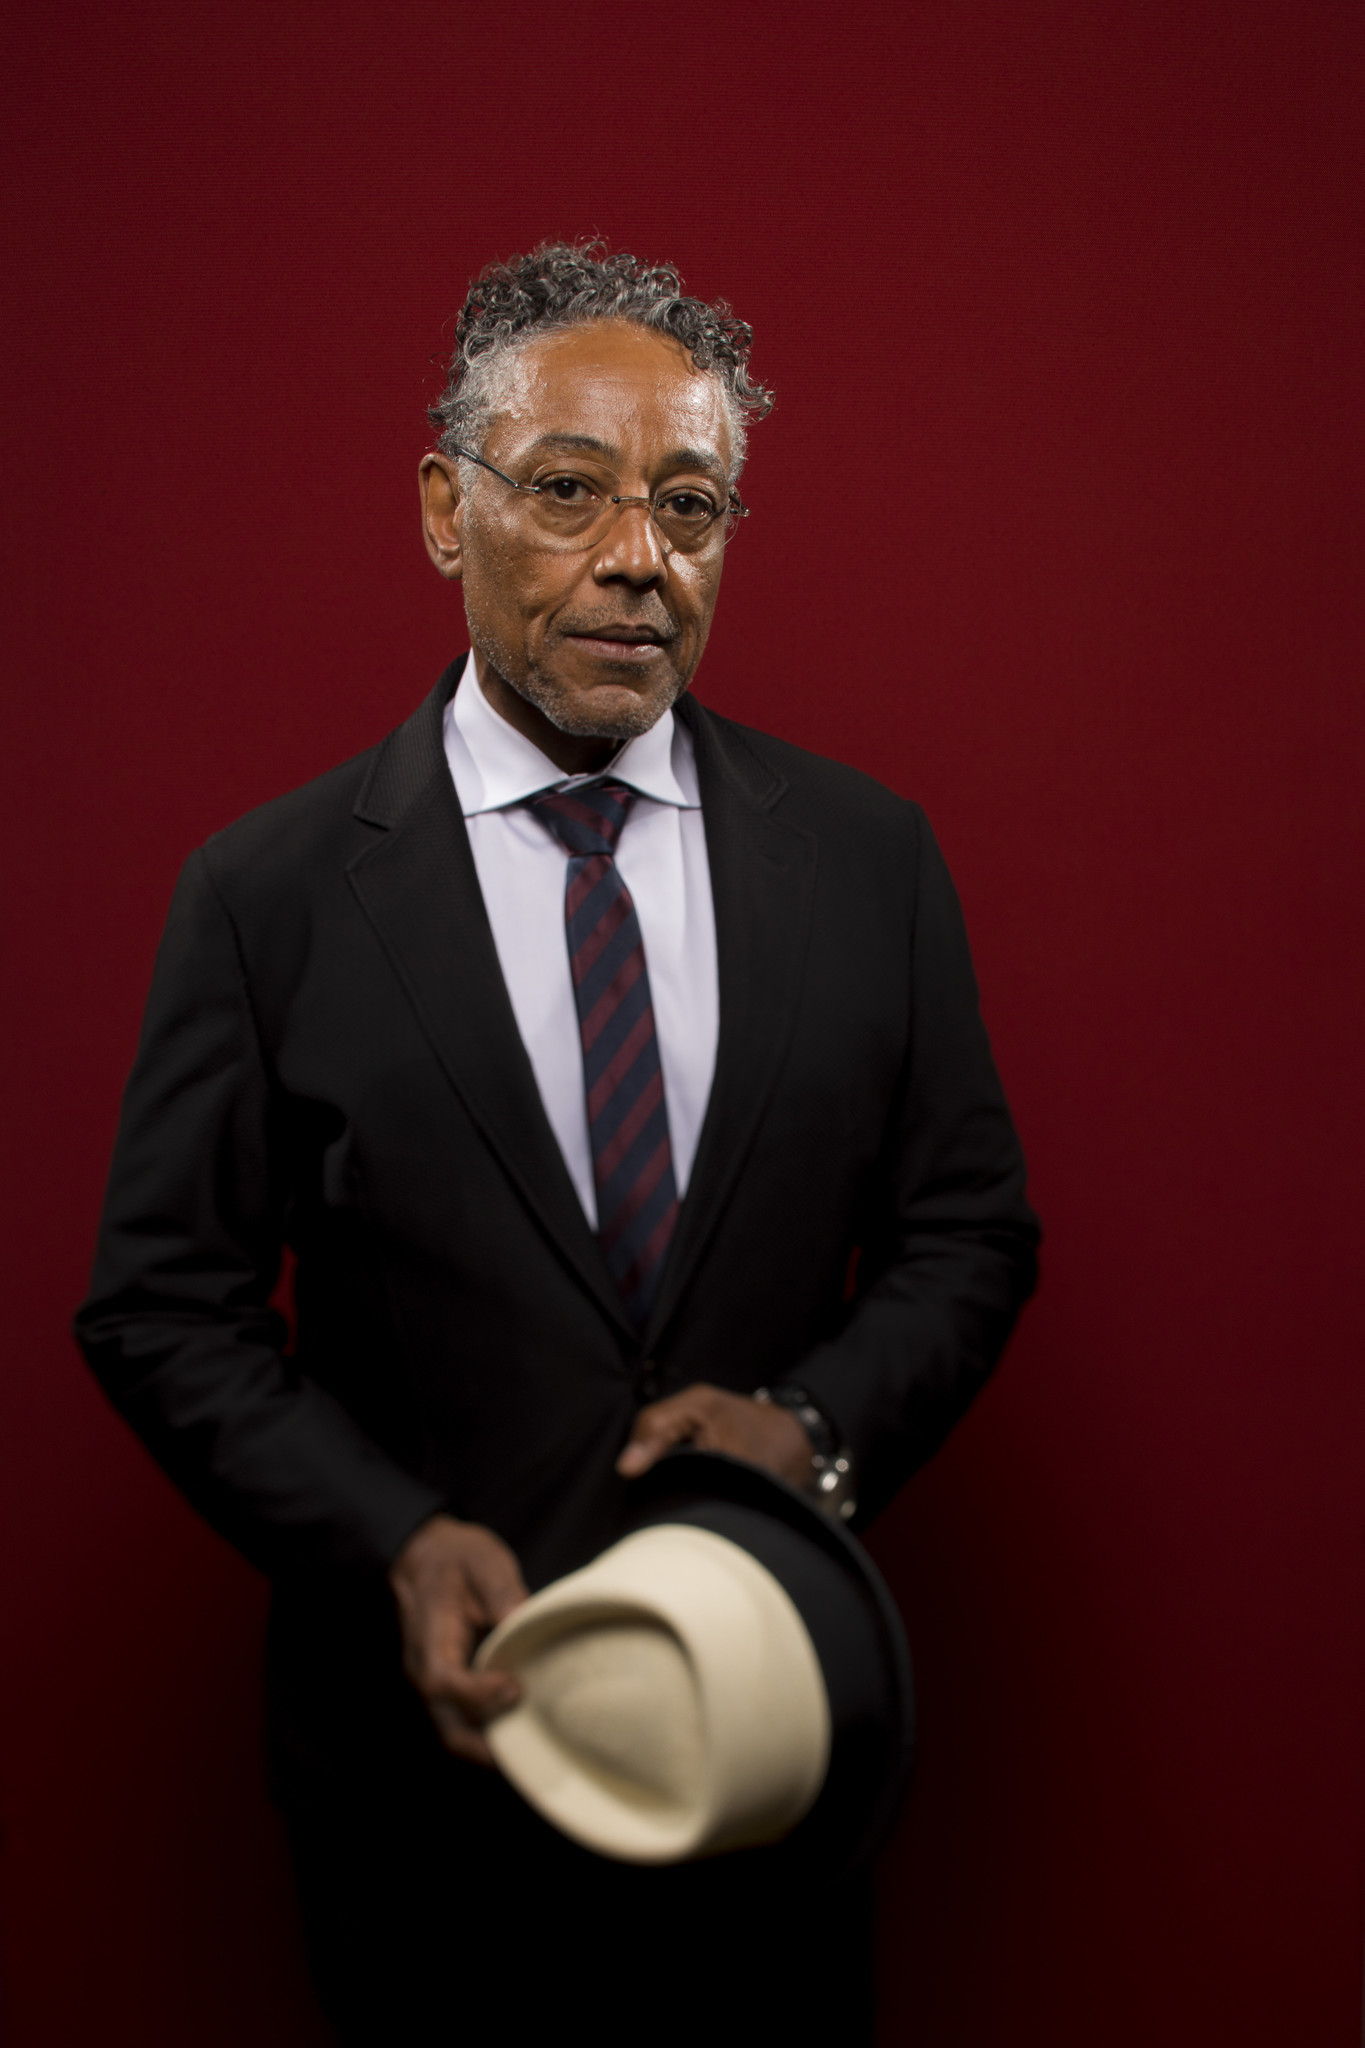 """SAN DIEGO, CALIF. -- JULY 19, 2018-- Giancarlo Esposito from the television series """"Better Call Sau"""